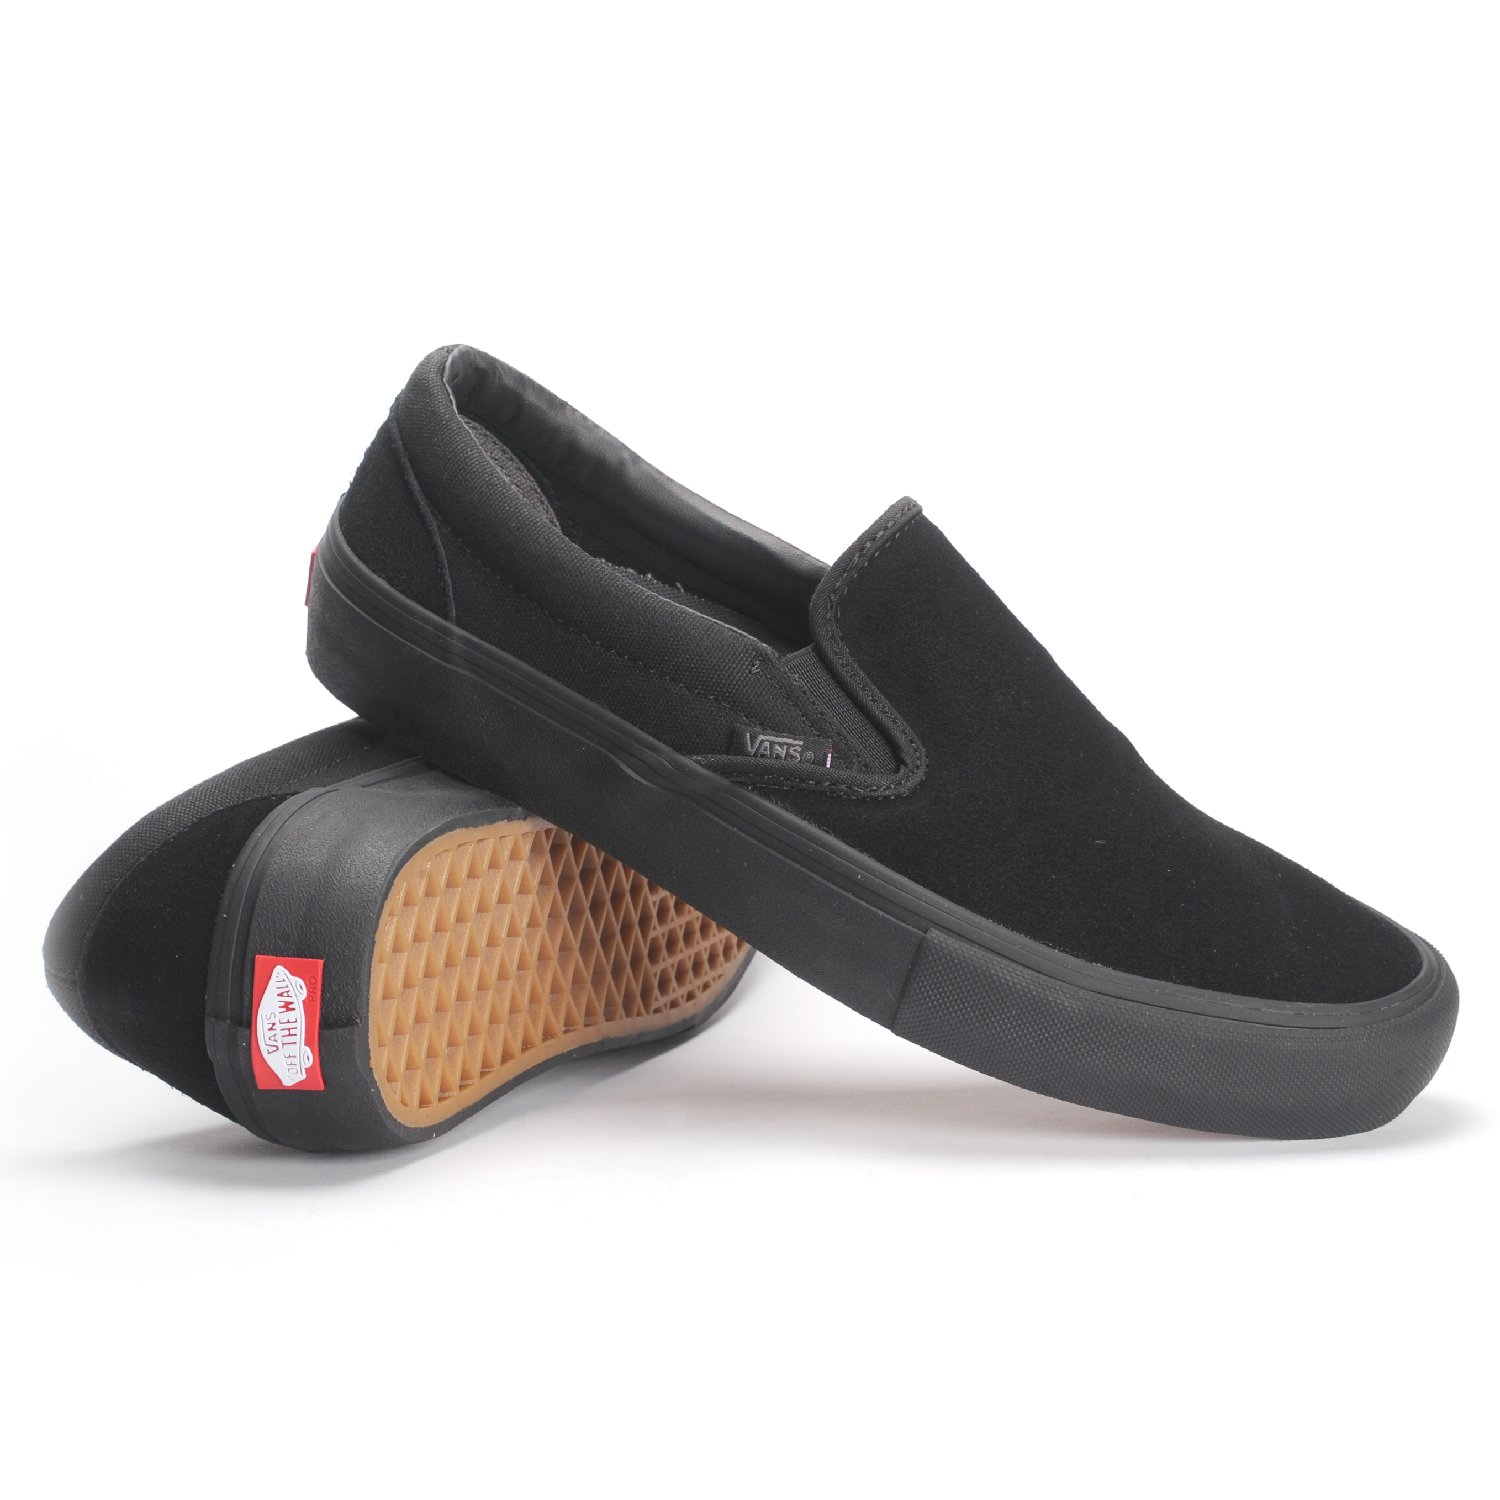 3565c9d6a71 Buy all black vans slip ons